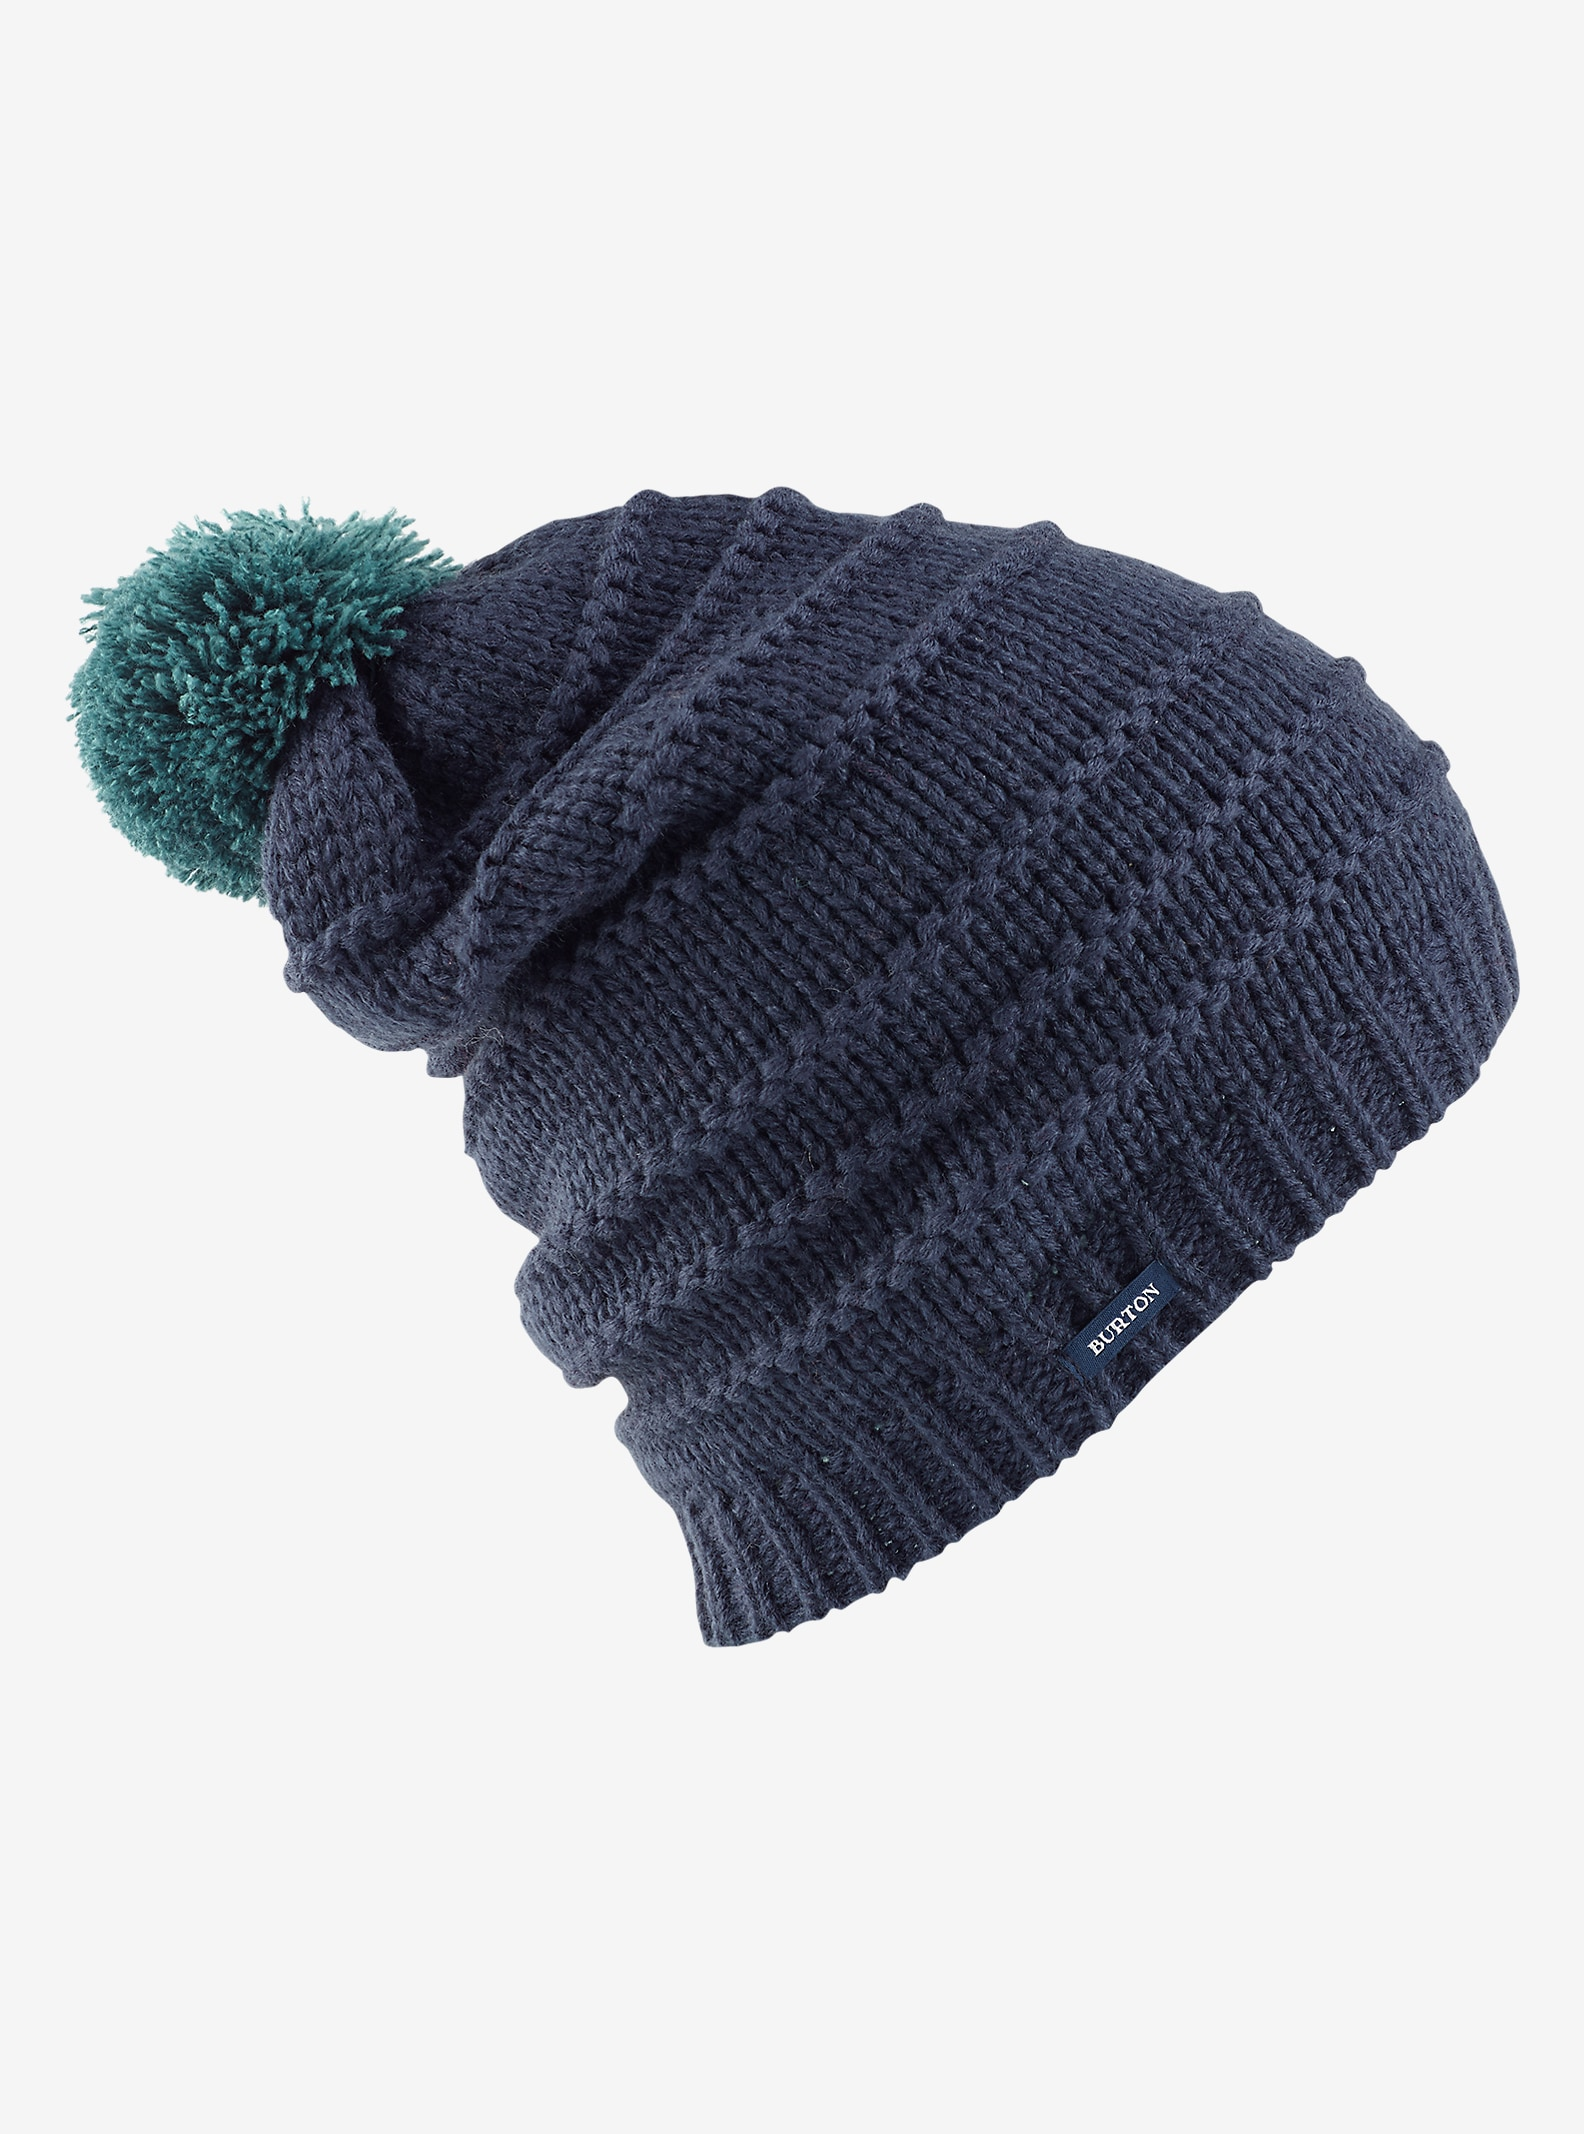 Burton Candystripe Beanie shown in Mood Indigo